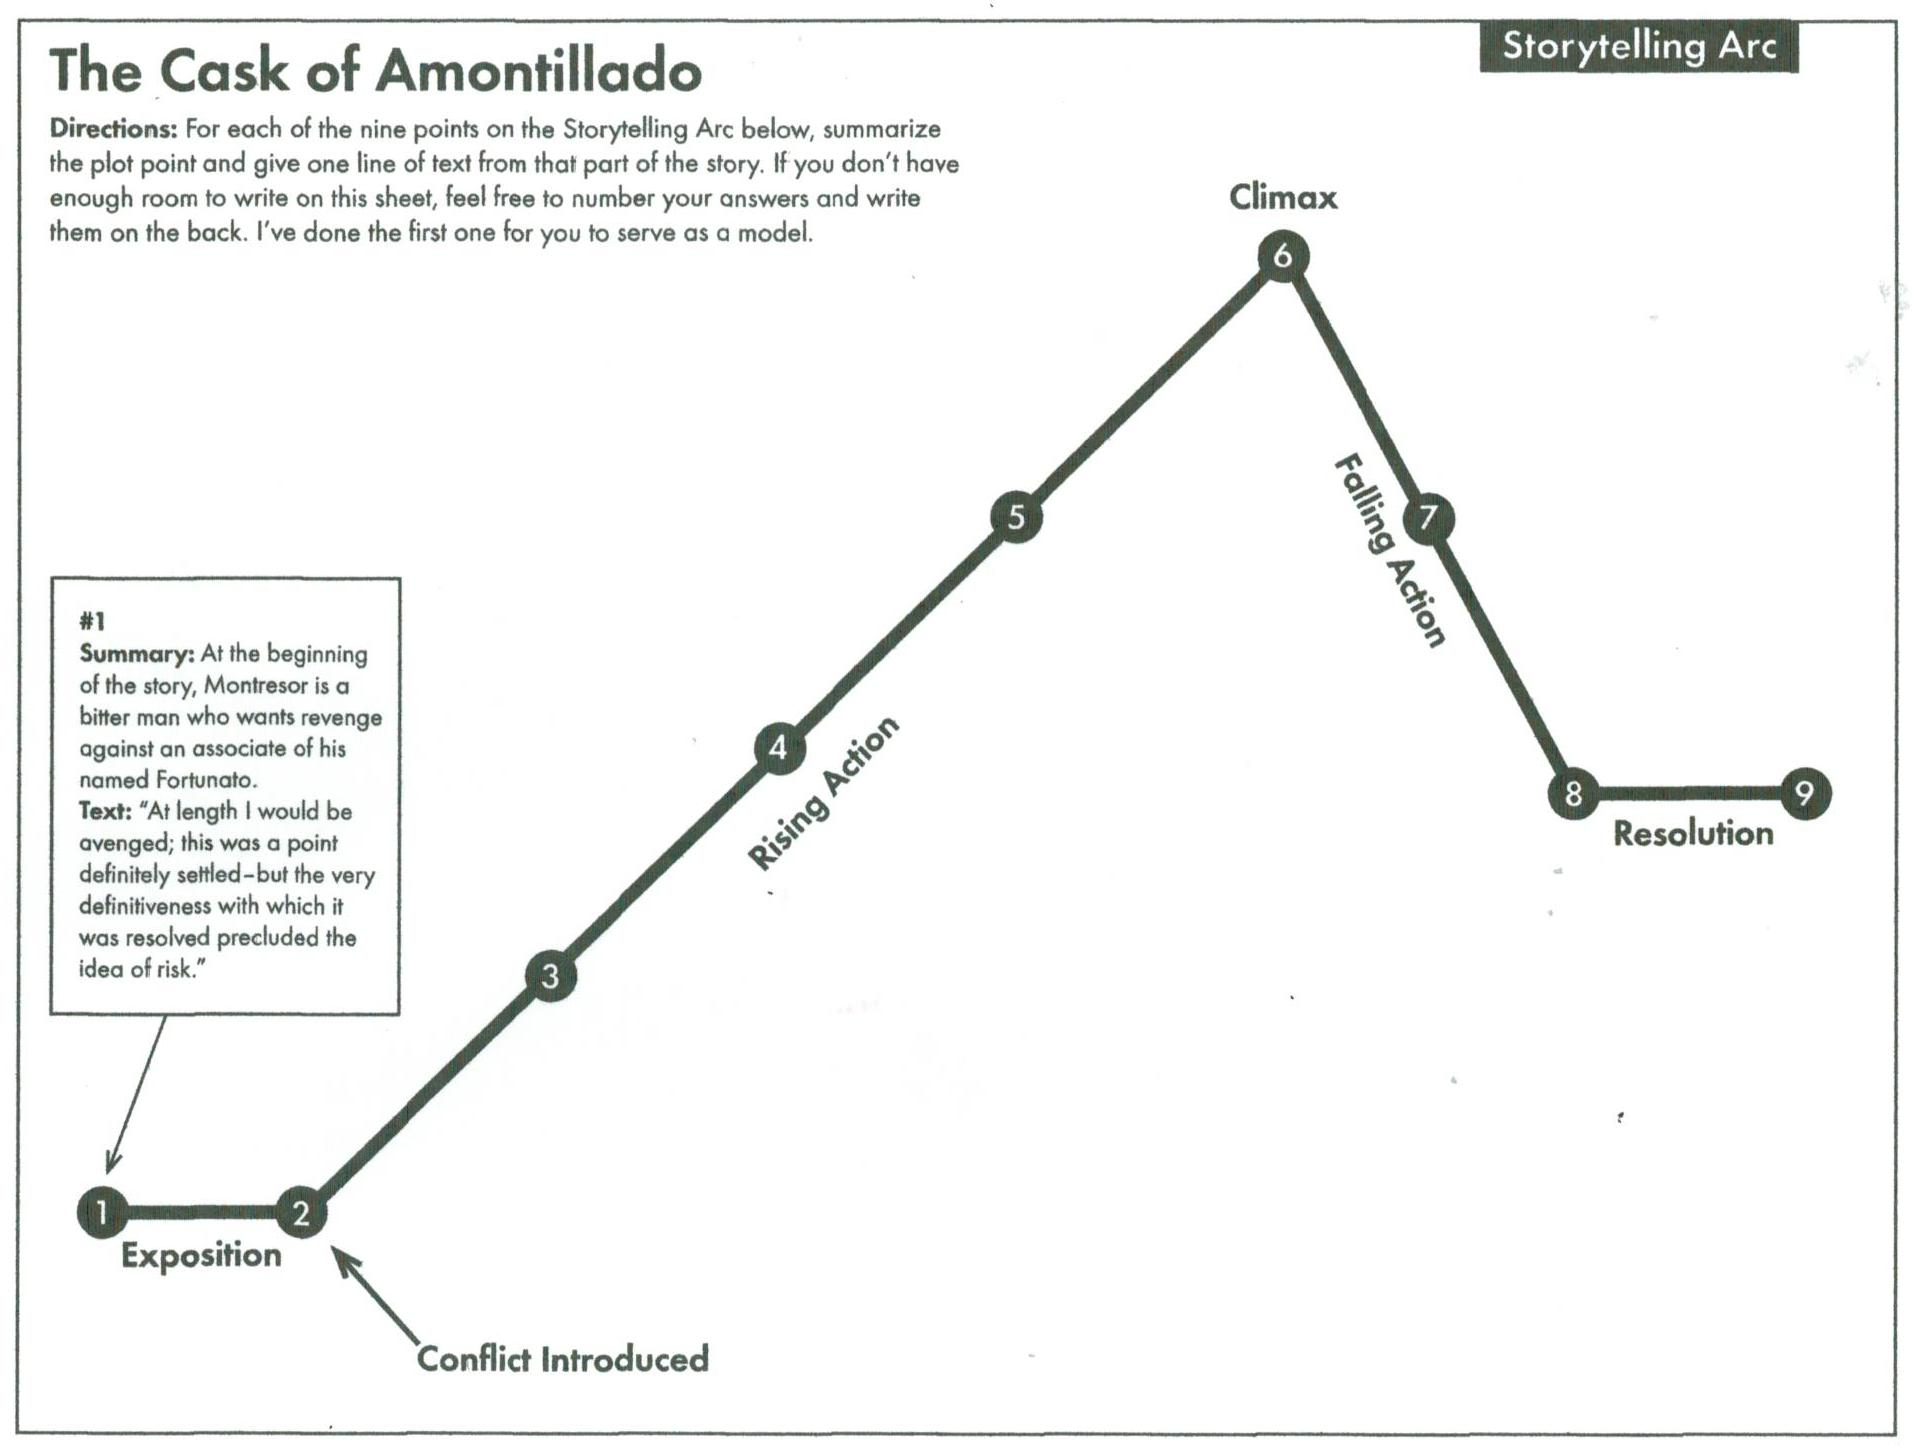 Plot Diagram For The Cask Of Amontillado